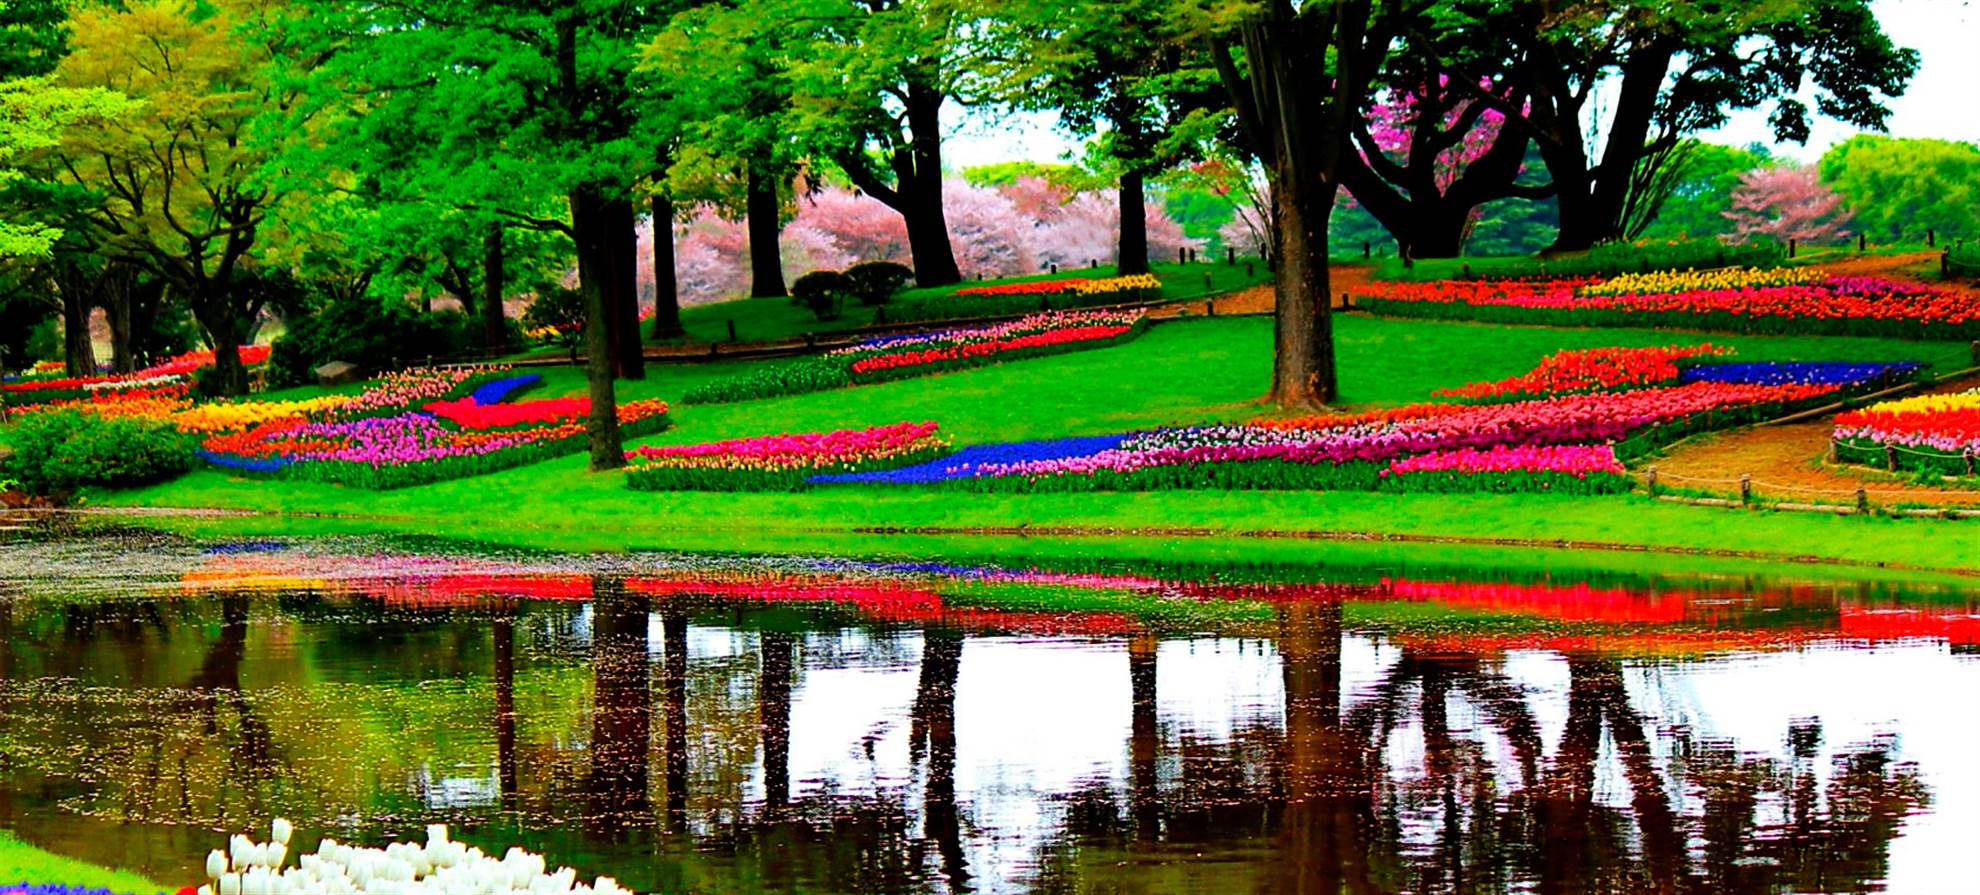 Keukenhof Gardens Tour from Amsterdam (Active and Bookable)